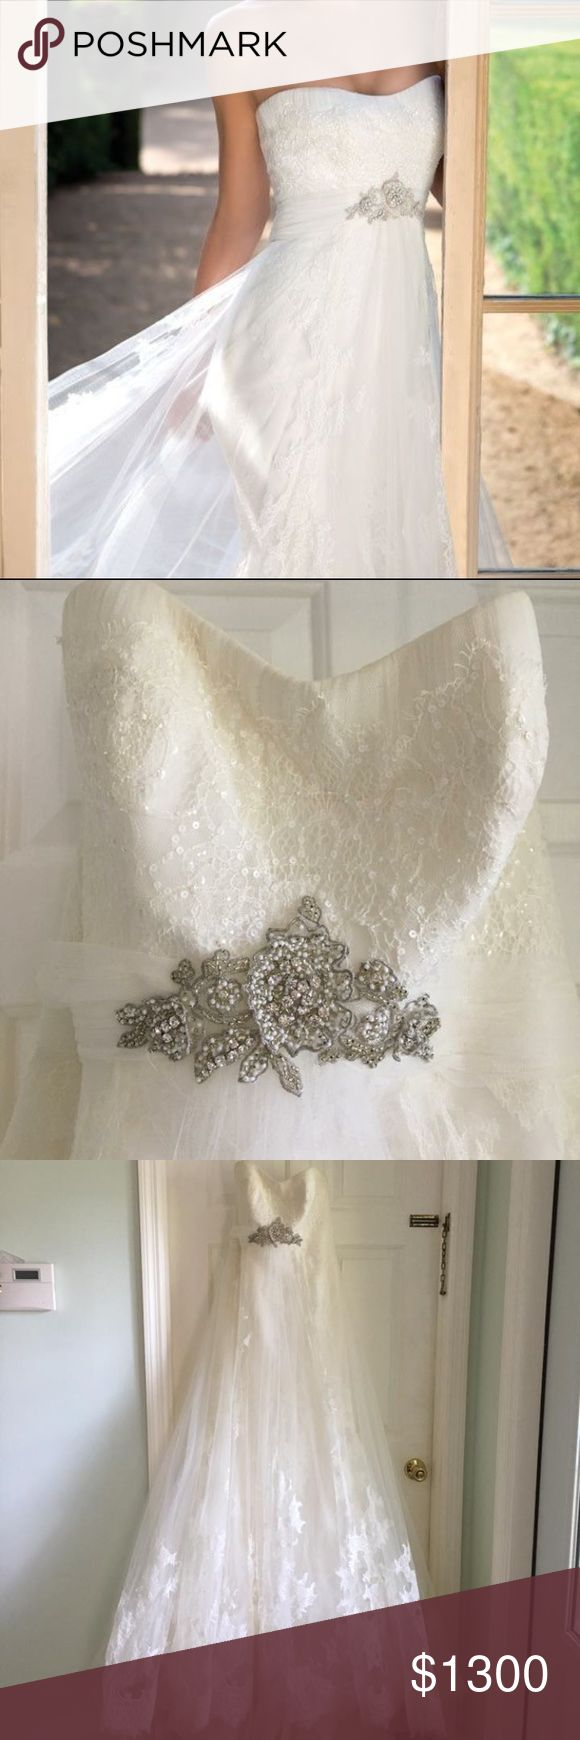 San Patrick wedding gown and veil (style- Ramaje) New without tags                                                                     Never been worn Still have receipts  Size 8  Hasn't been altered    Comes with veil Dress is off white Dresses Wedding